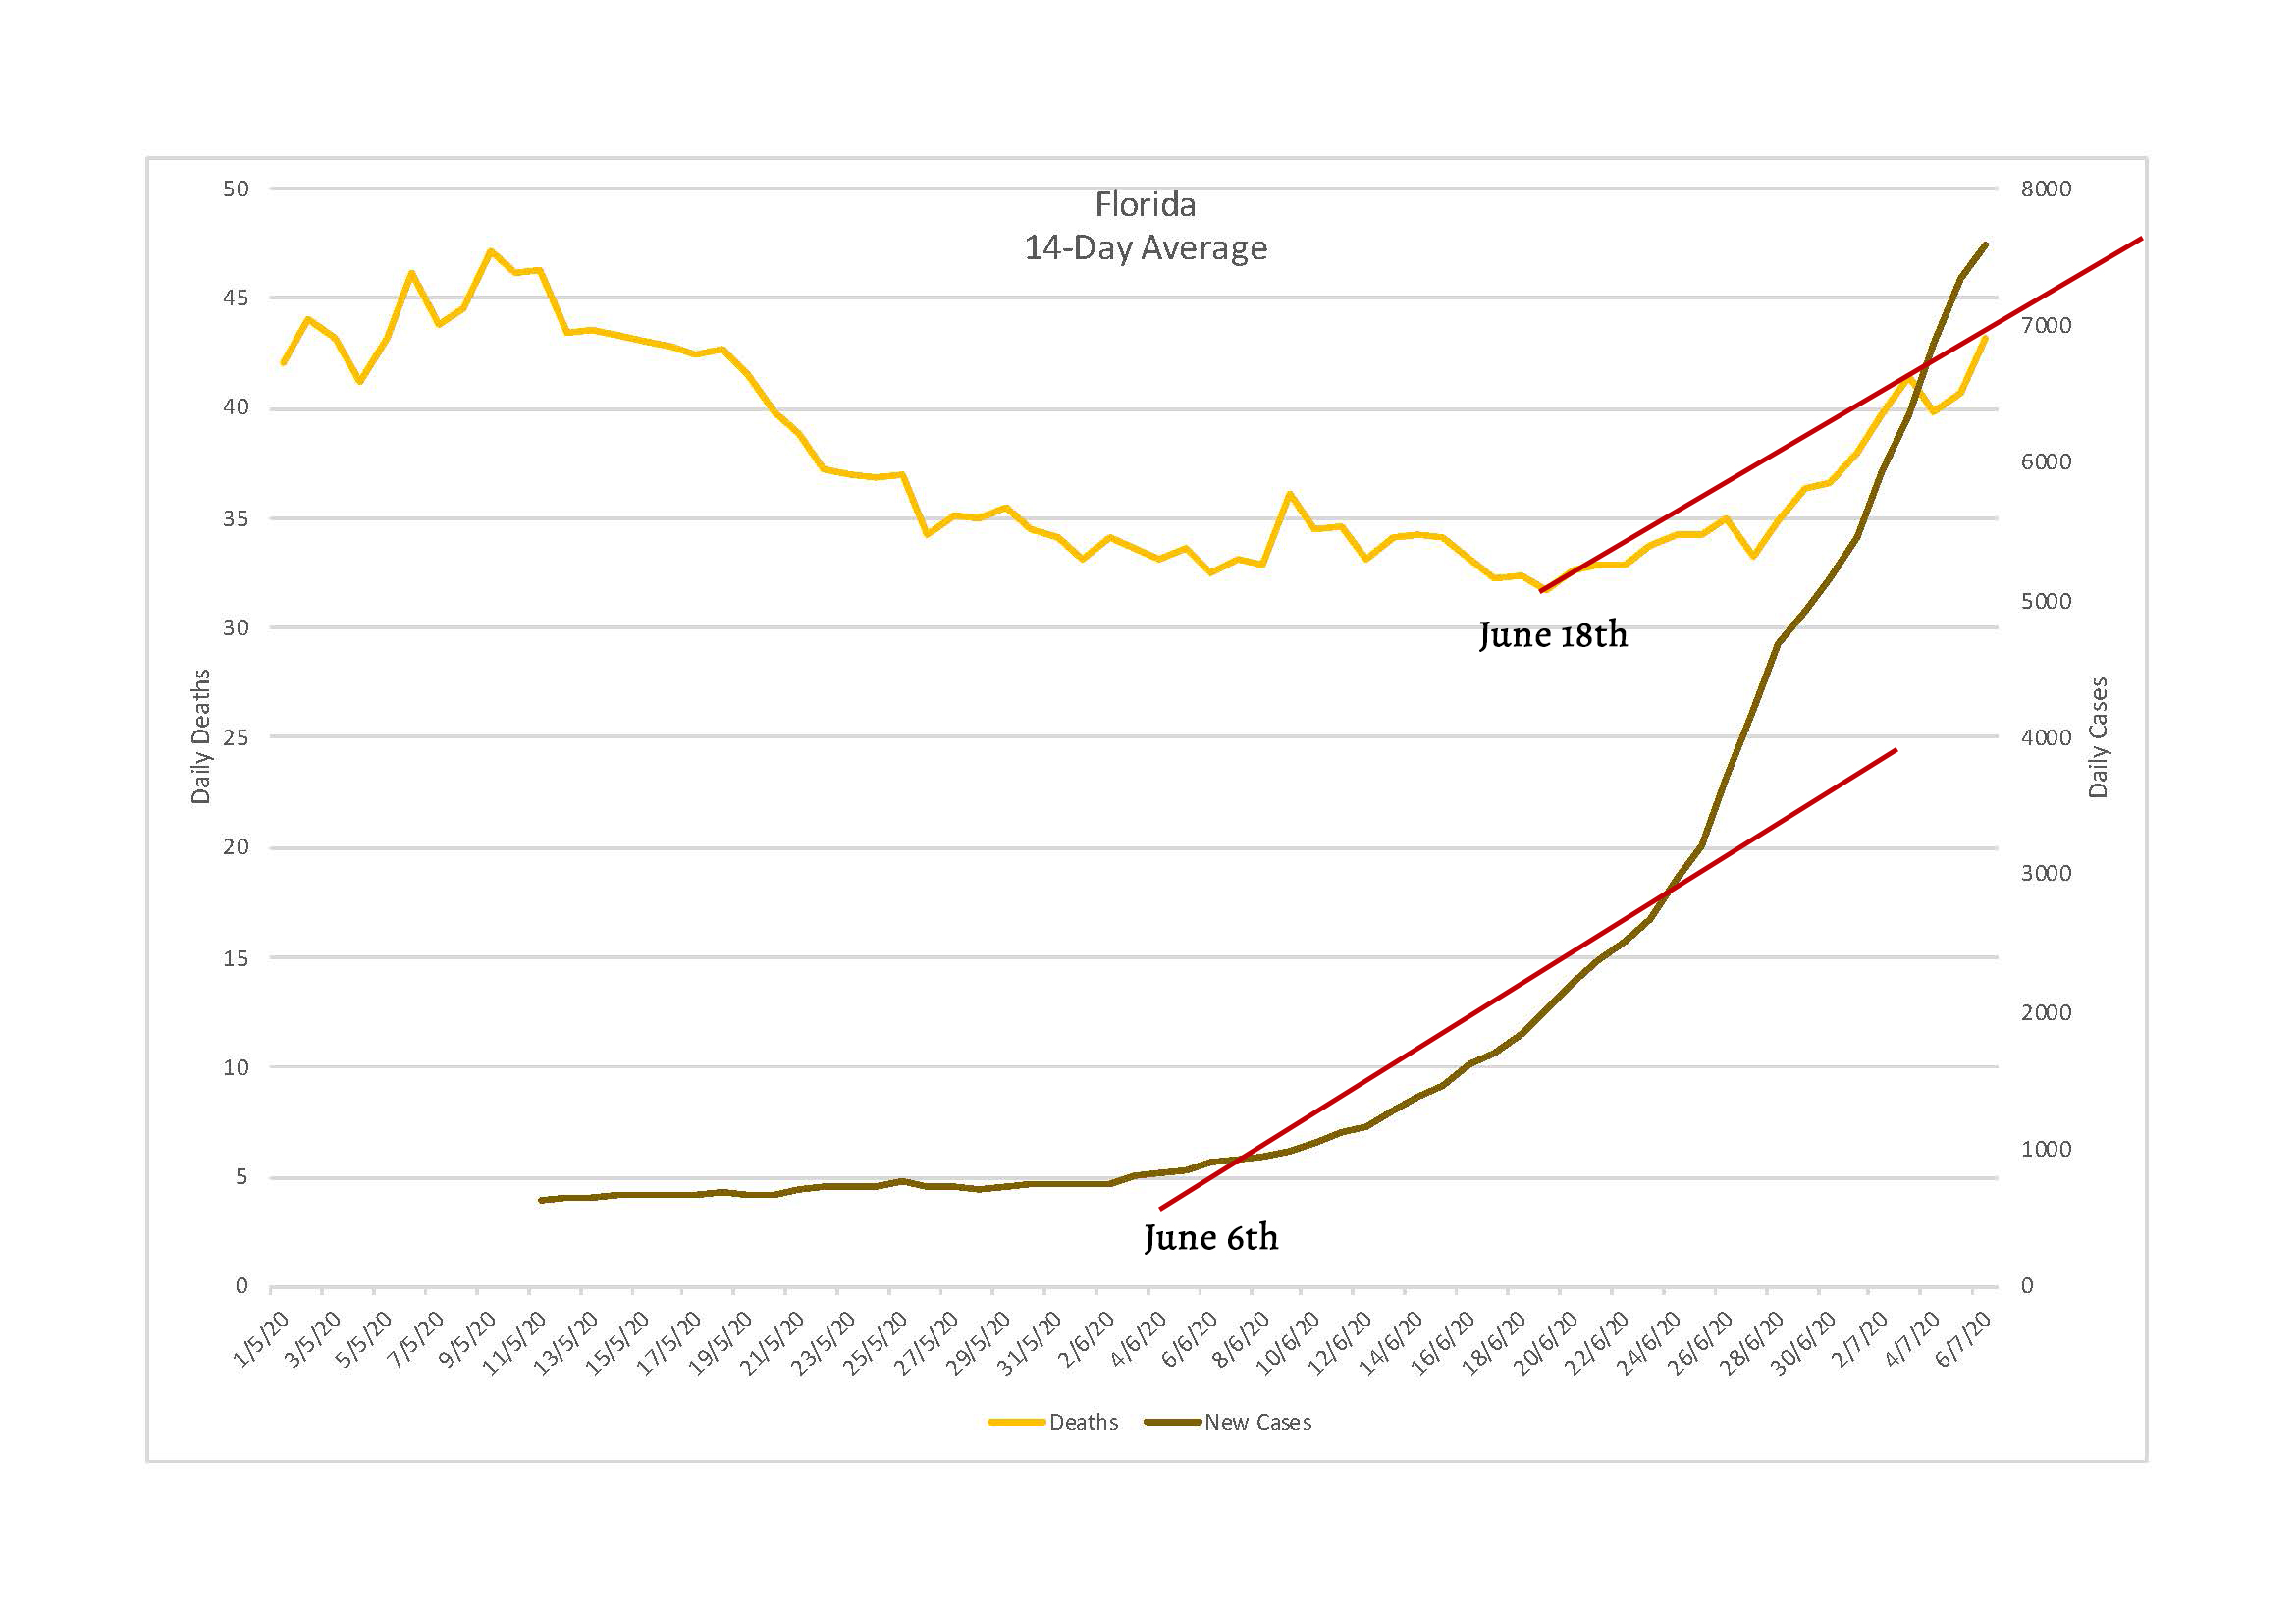 Chart of Florida daily COVID-19 deaths vs. new cases over time